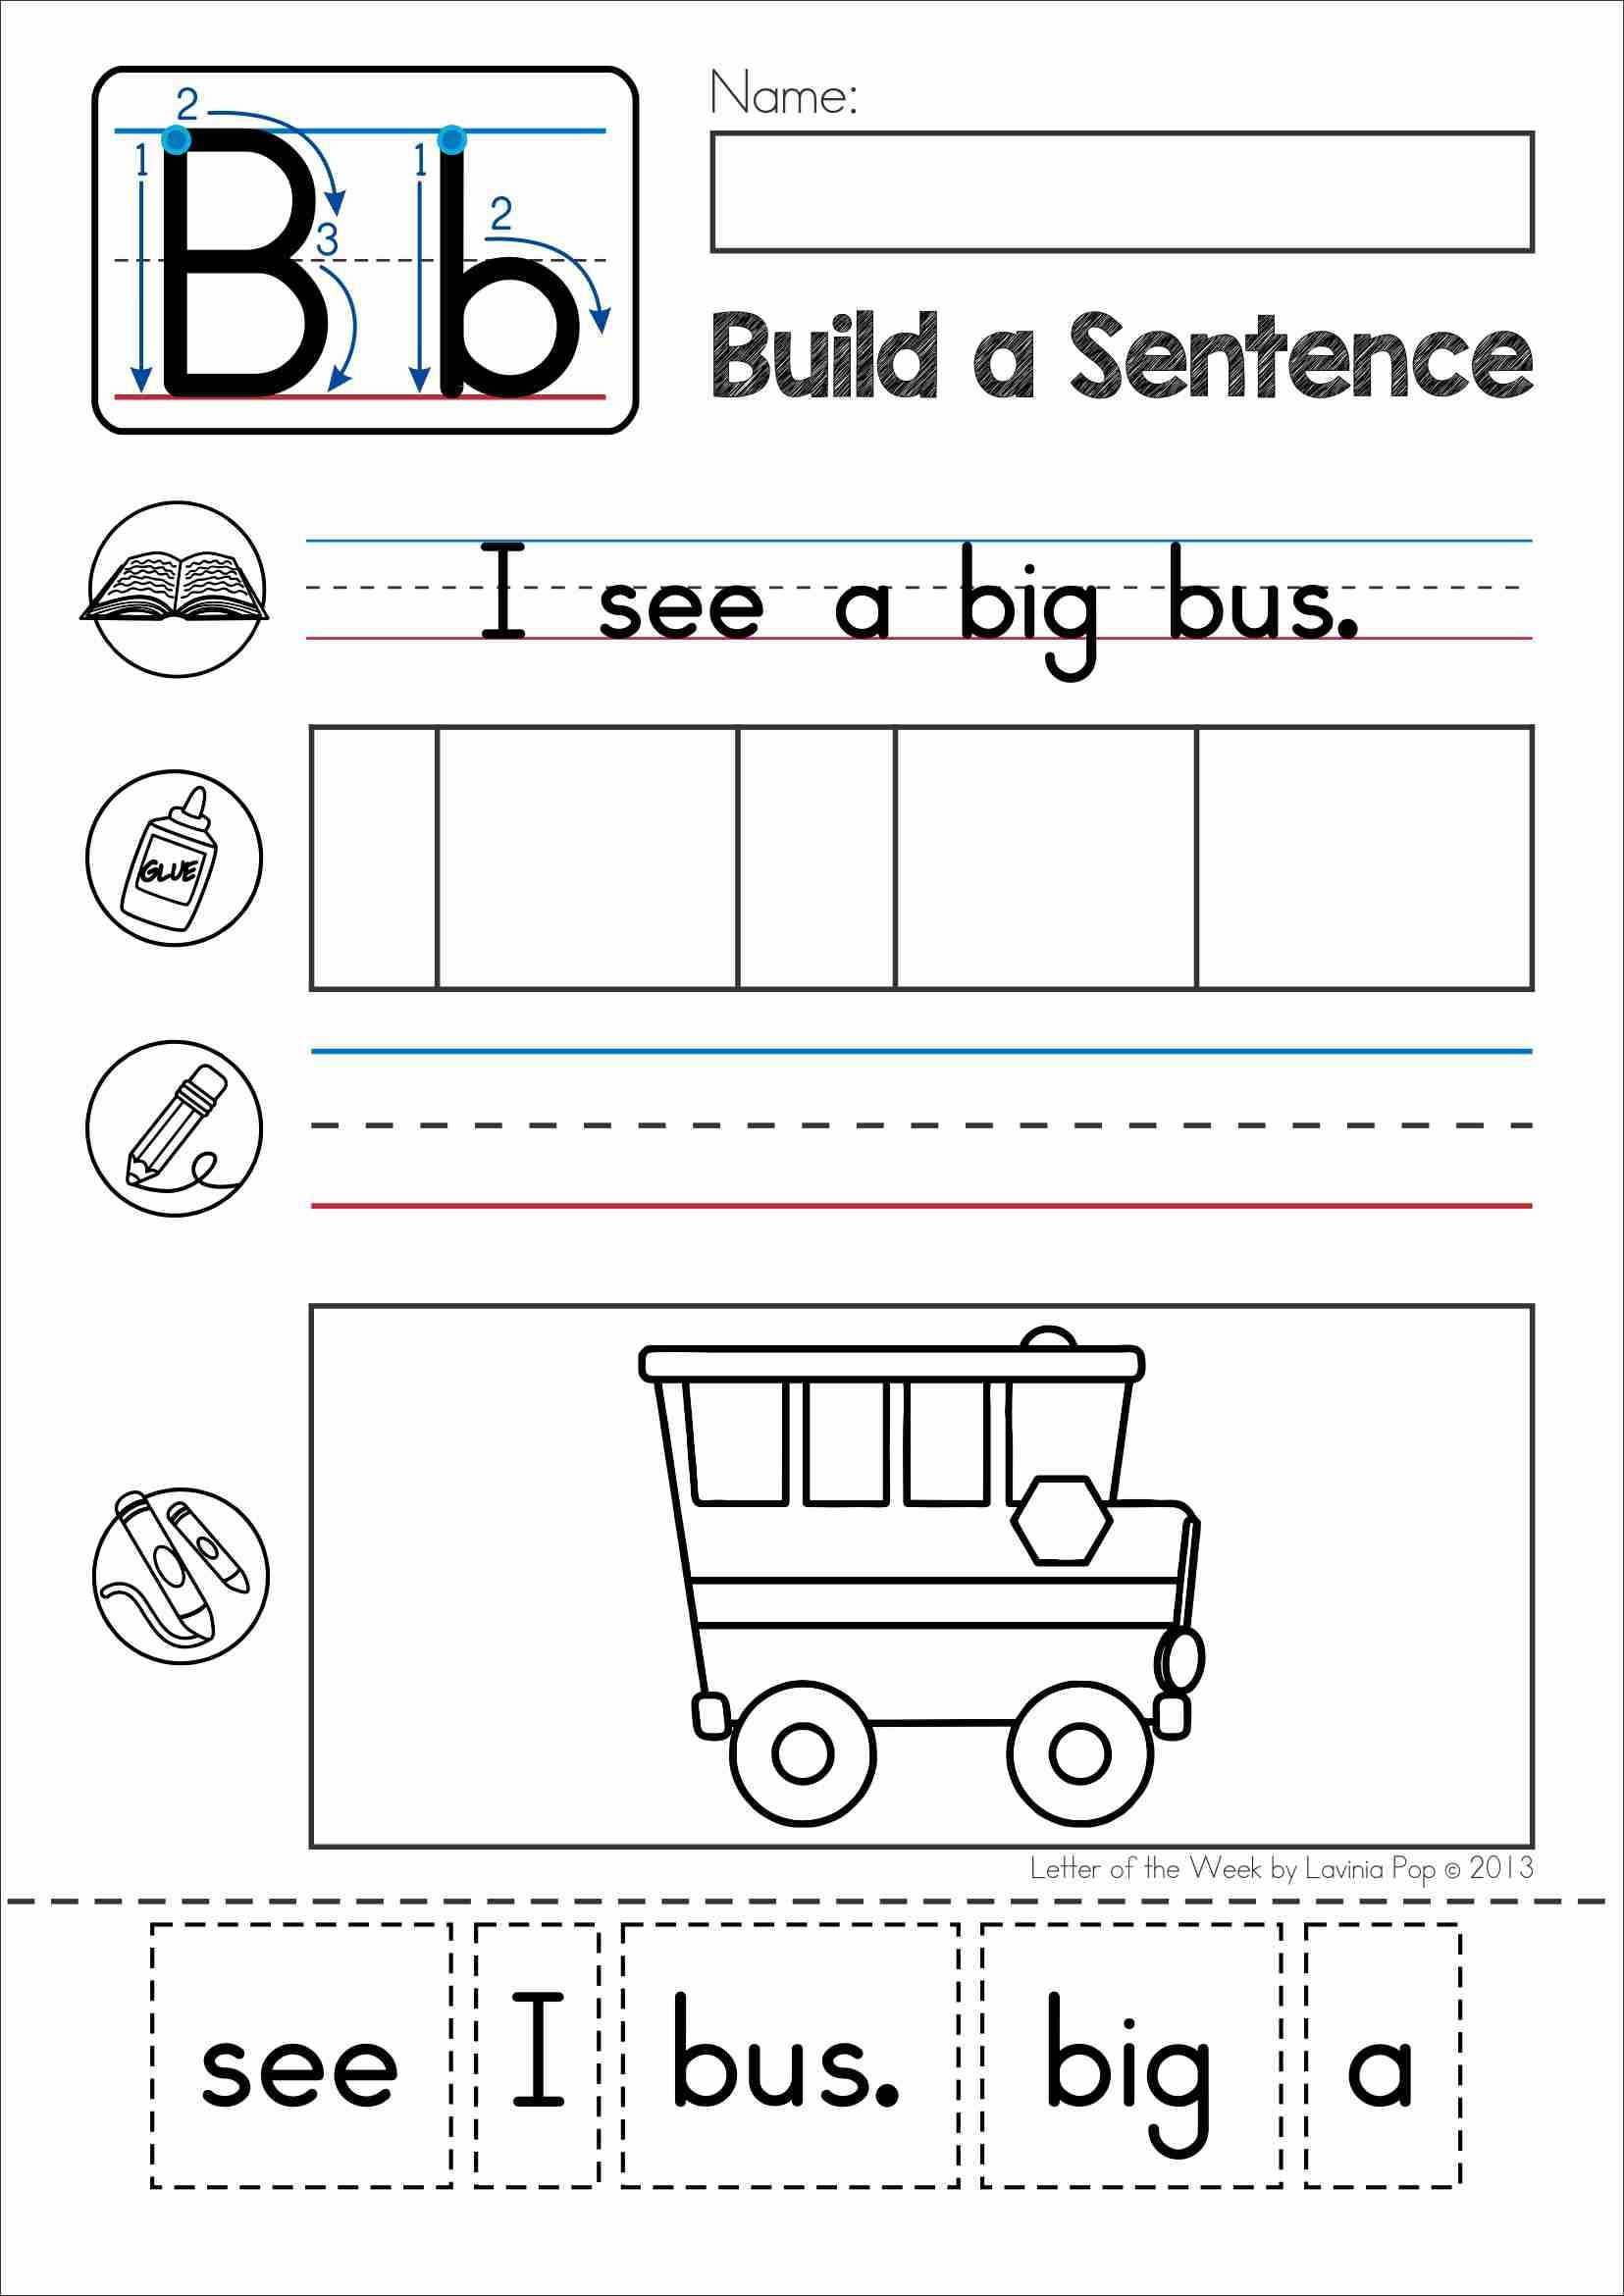 Phonics Letter Of The Week B Build A Sentence Cut And